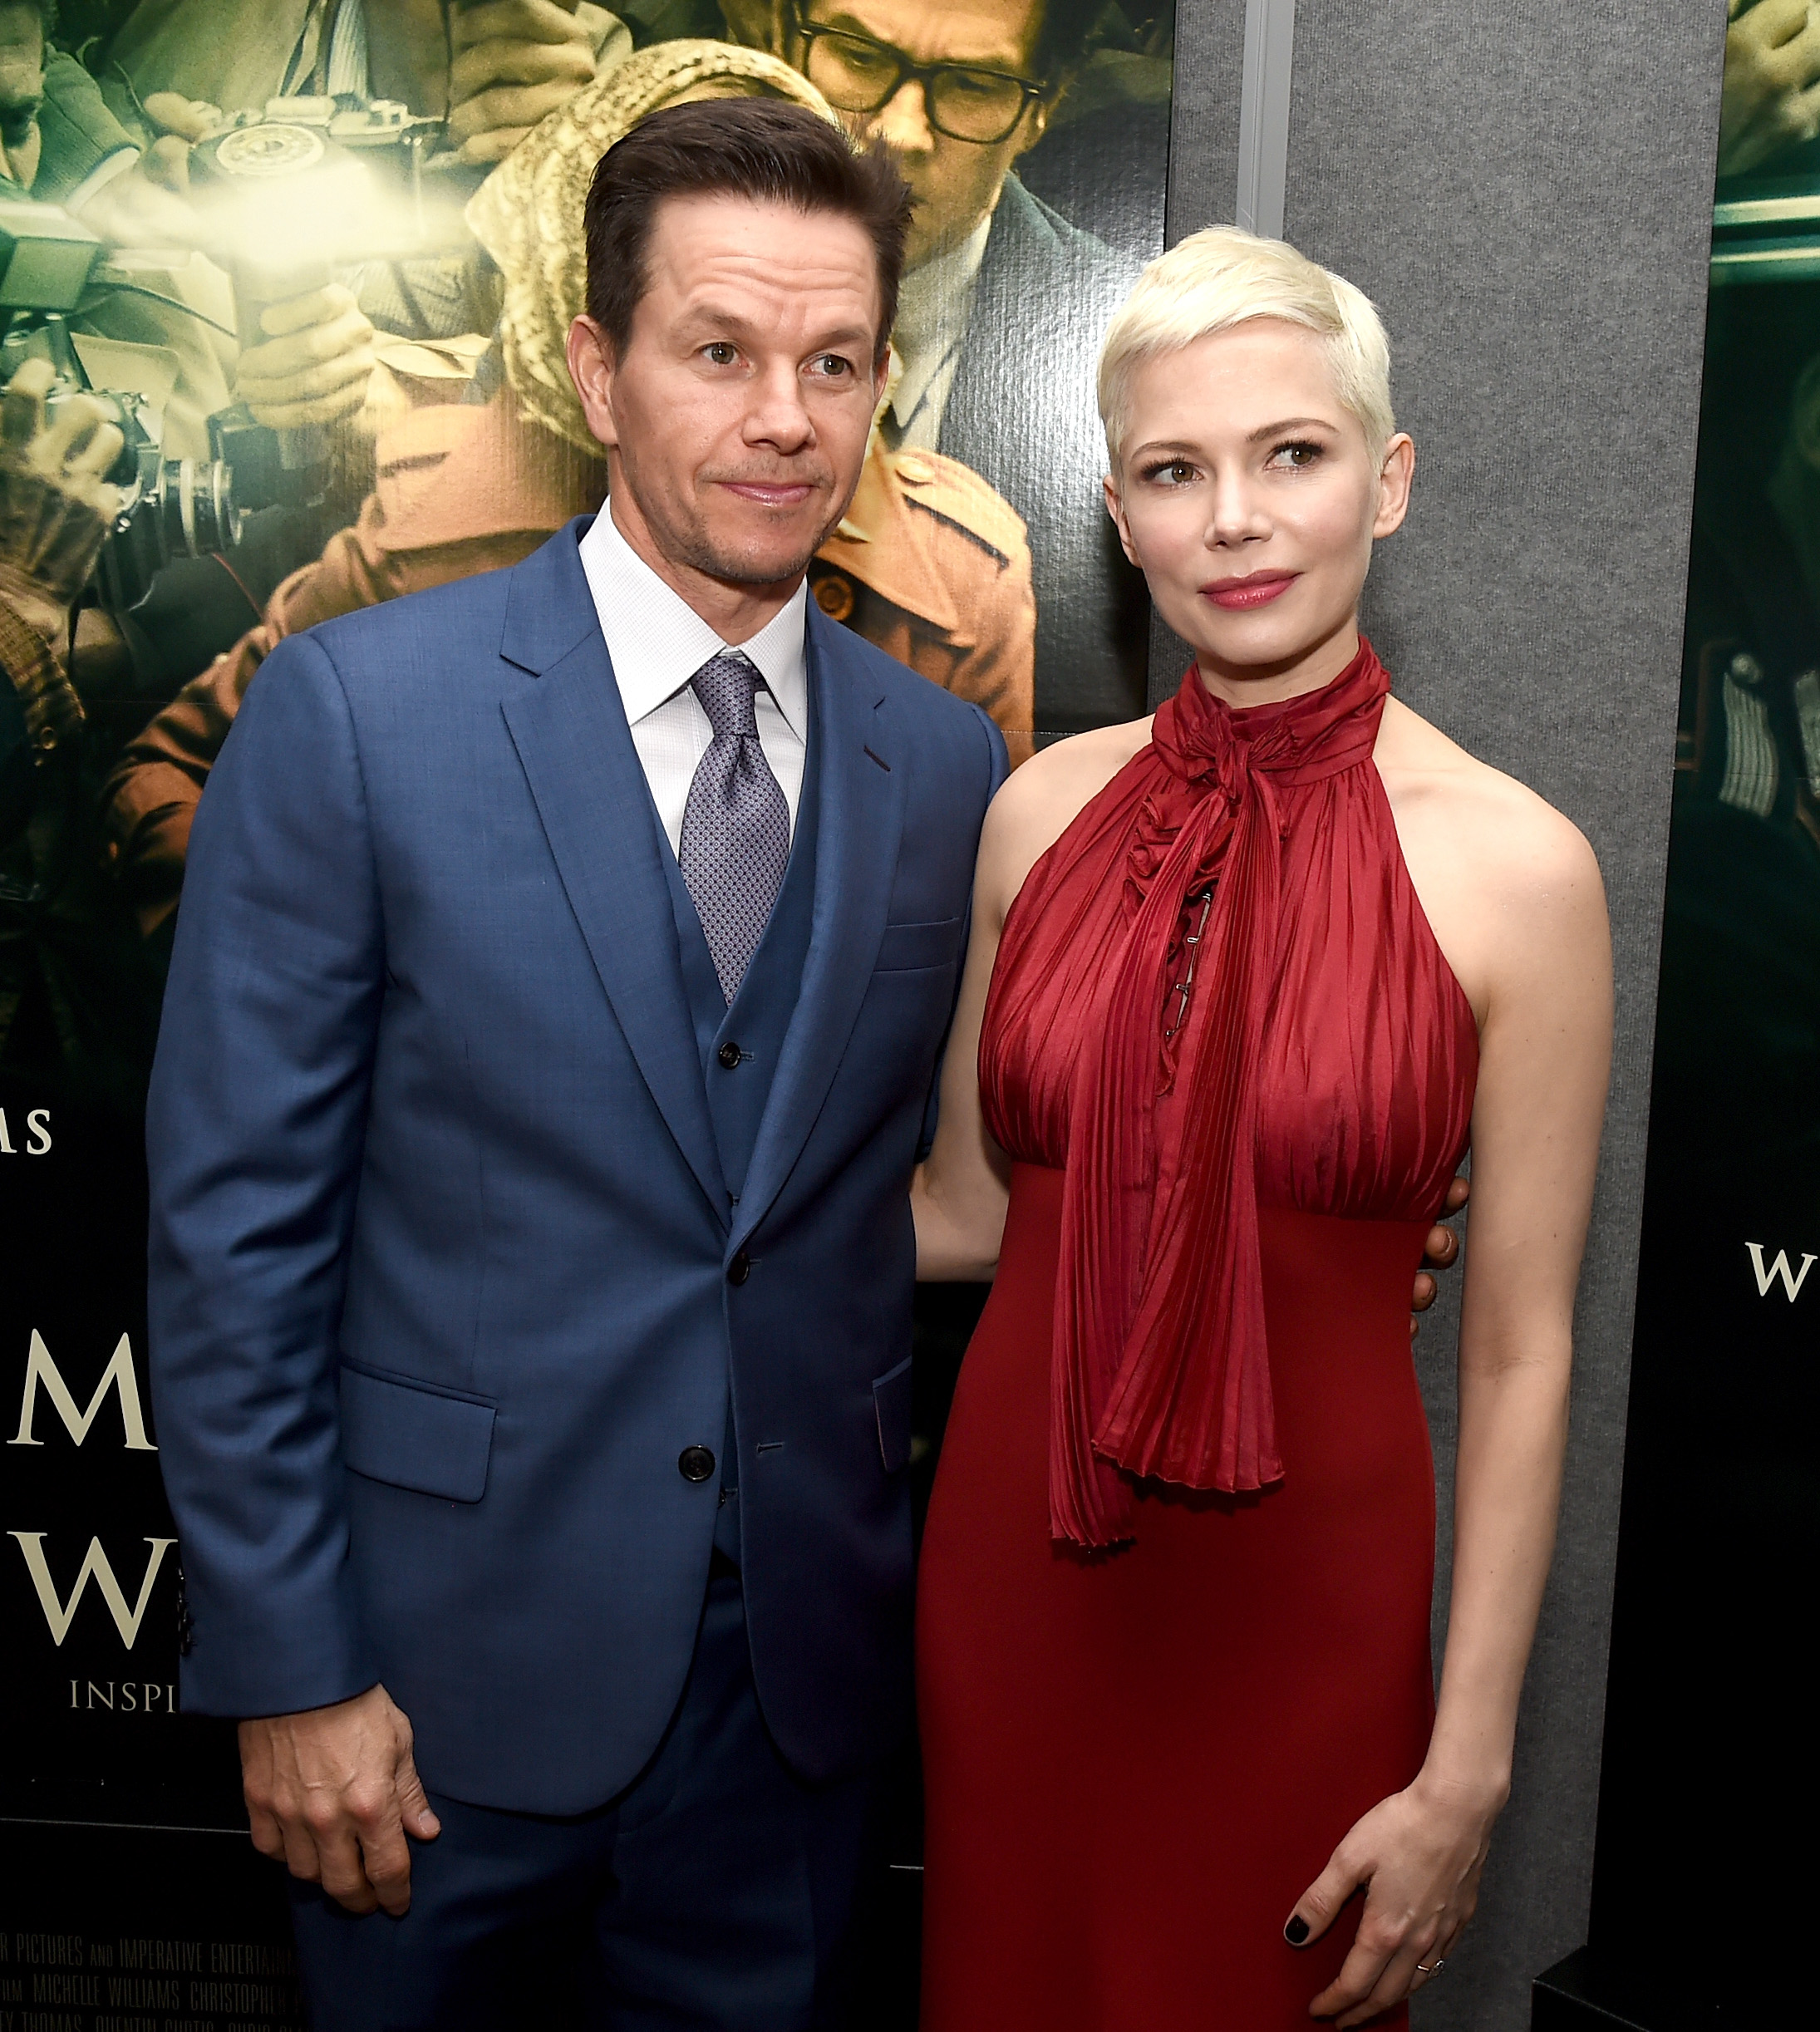 Michelle Williams Paid 1% Of Wahlberg's Fee For 'All The Money' Reshoots